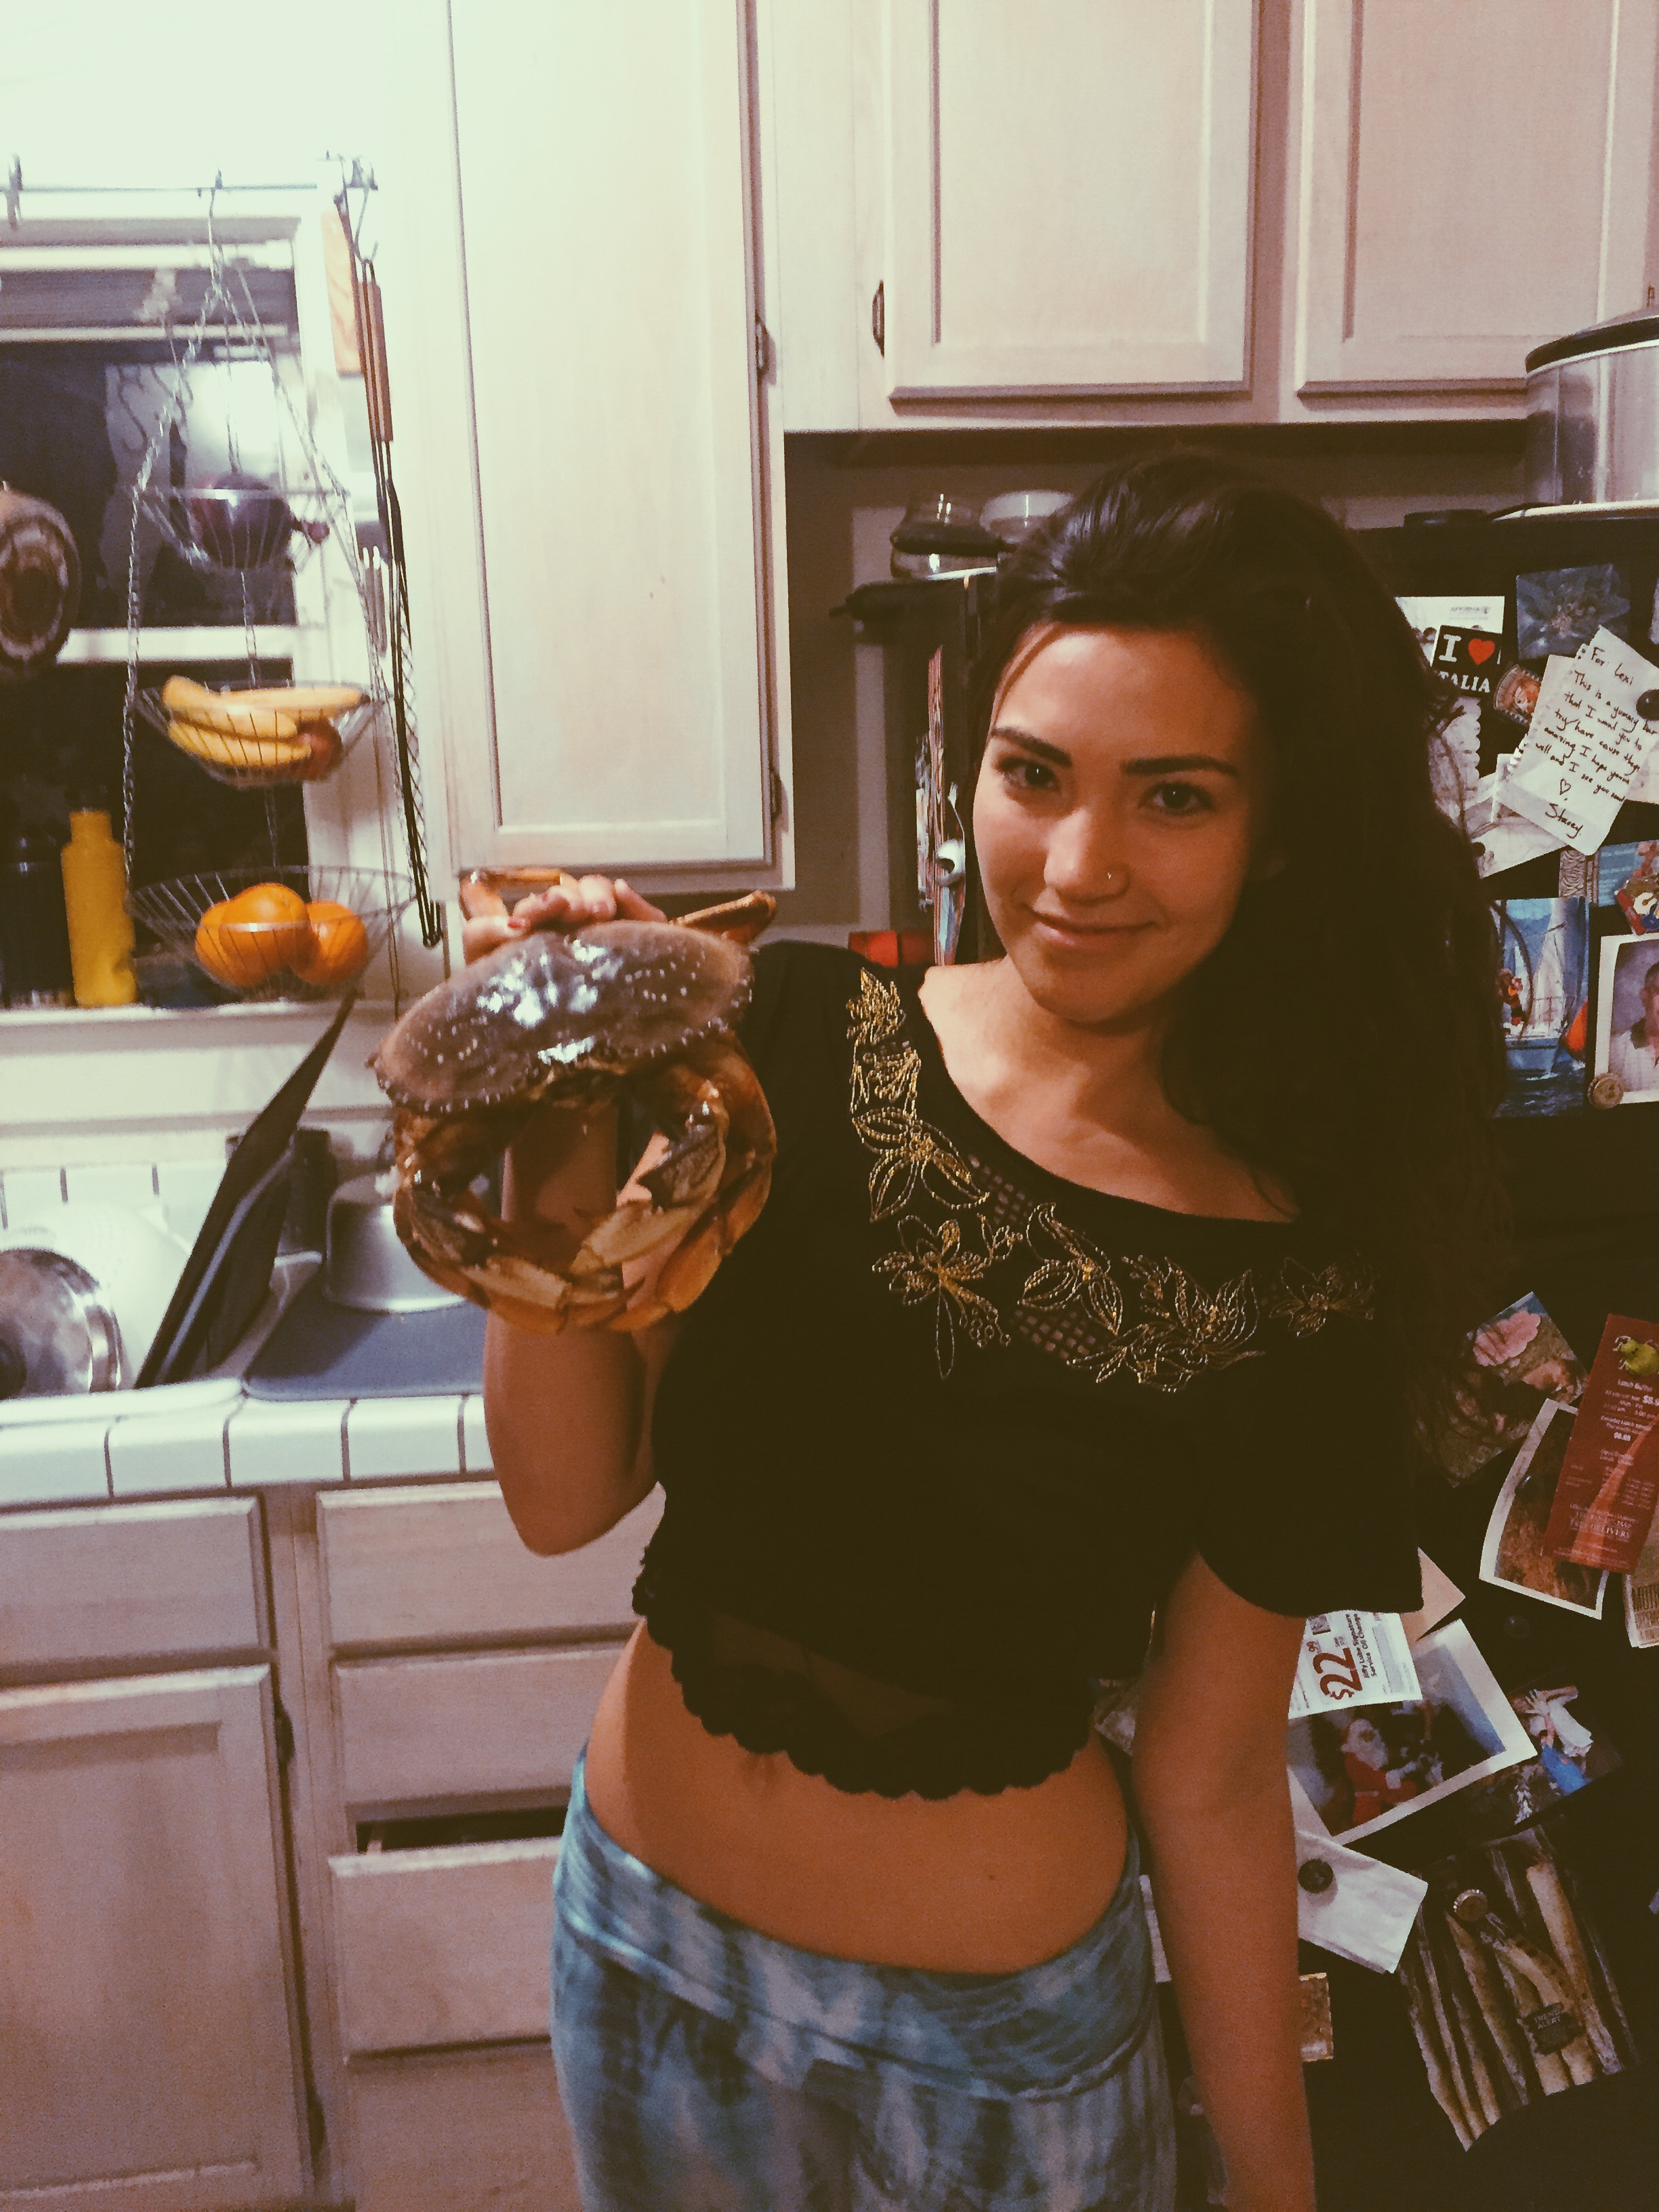 :: I learned how to clean a crab ::